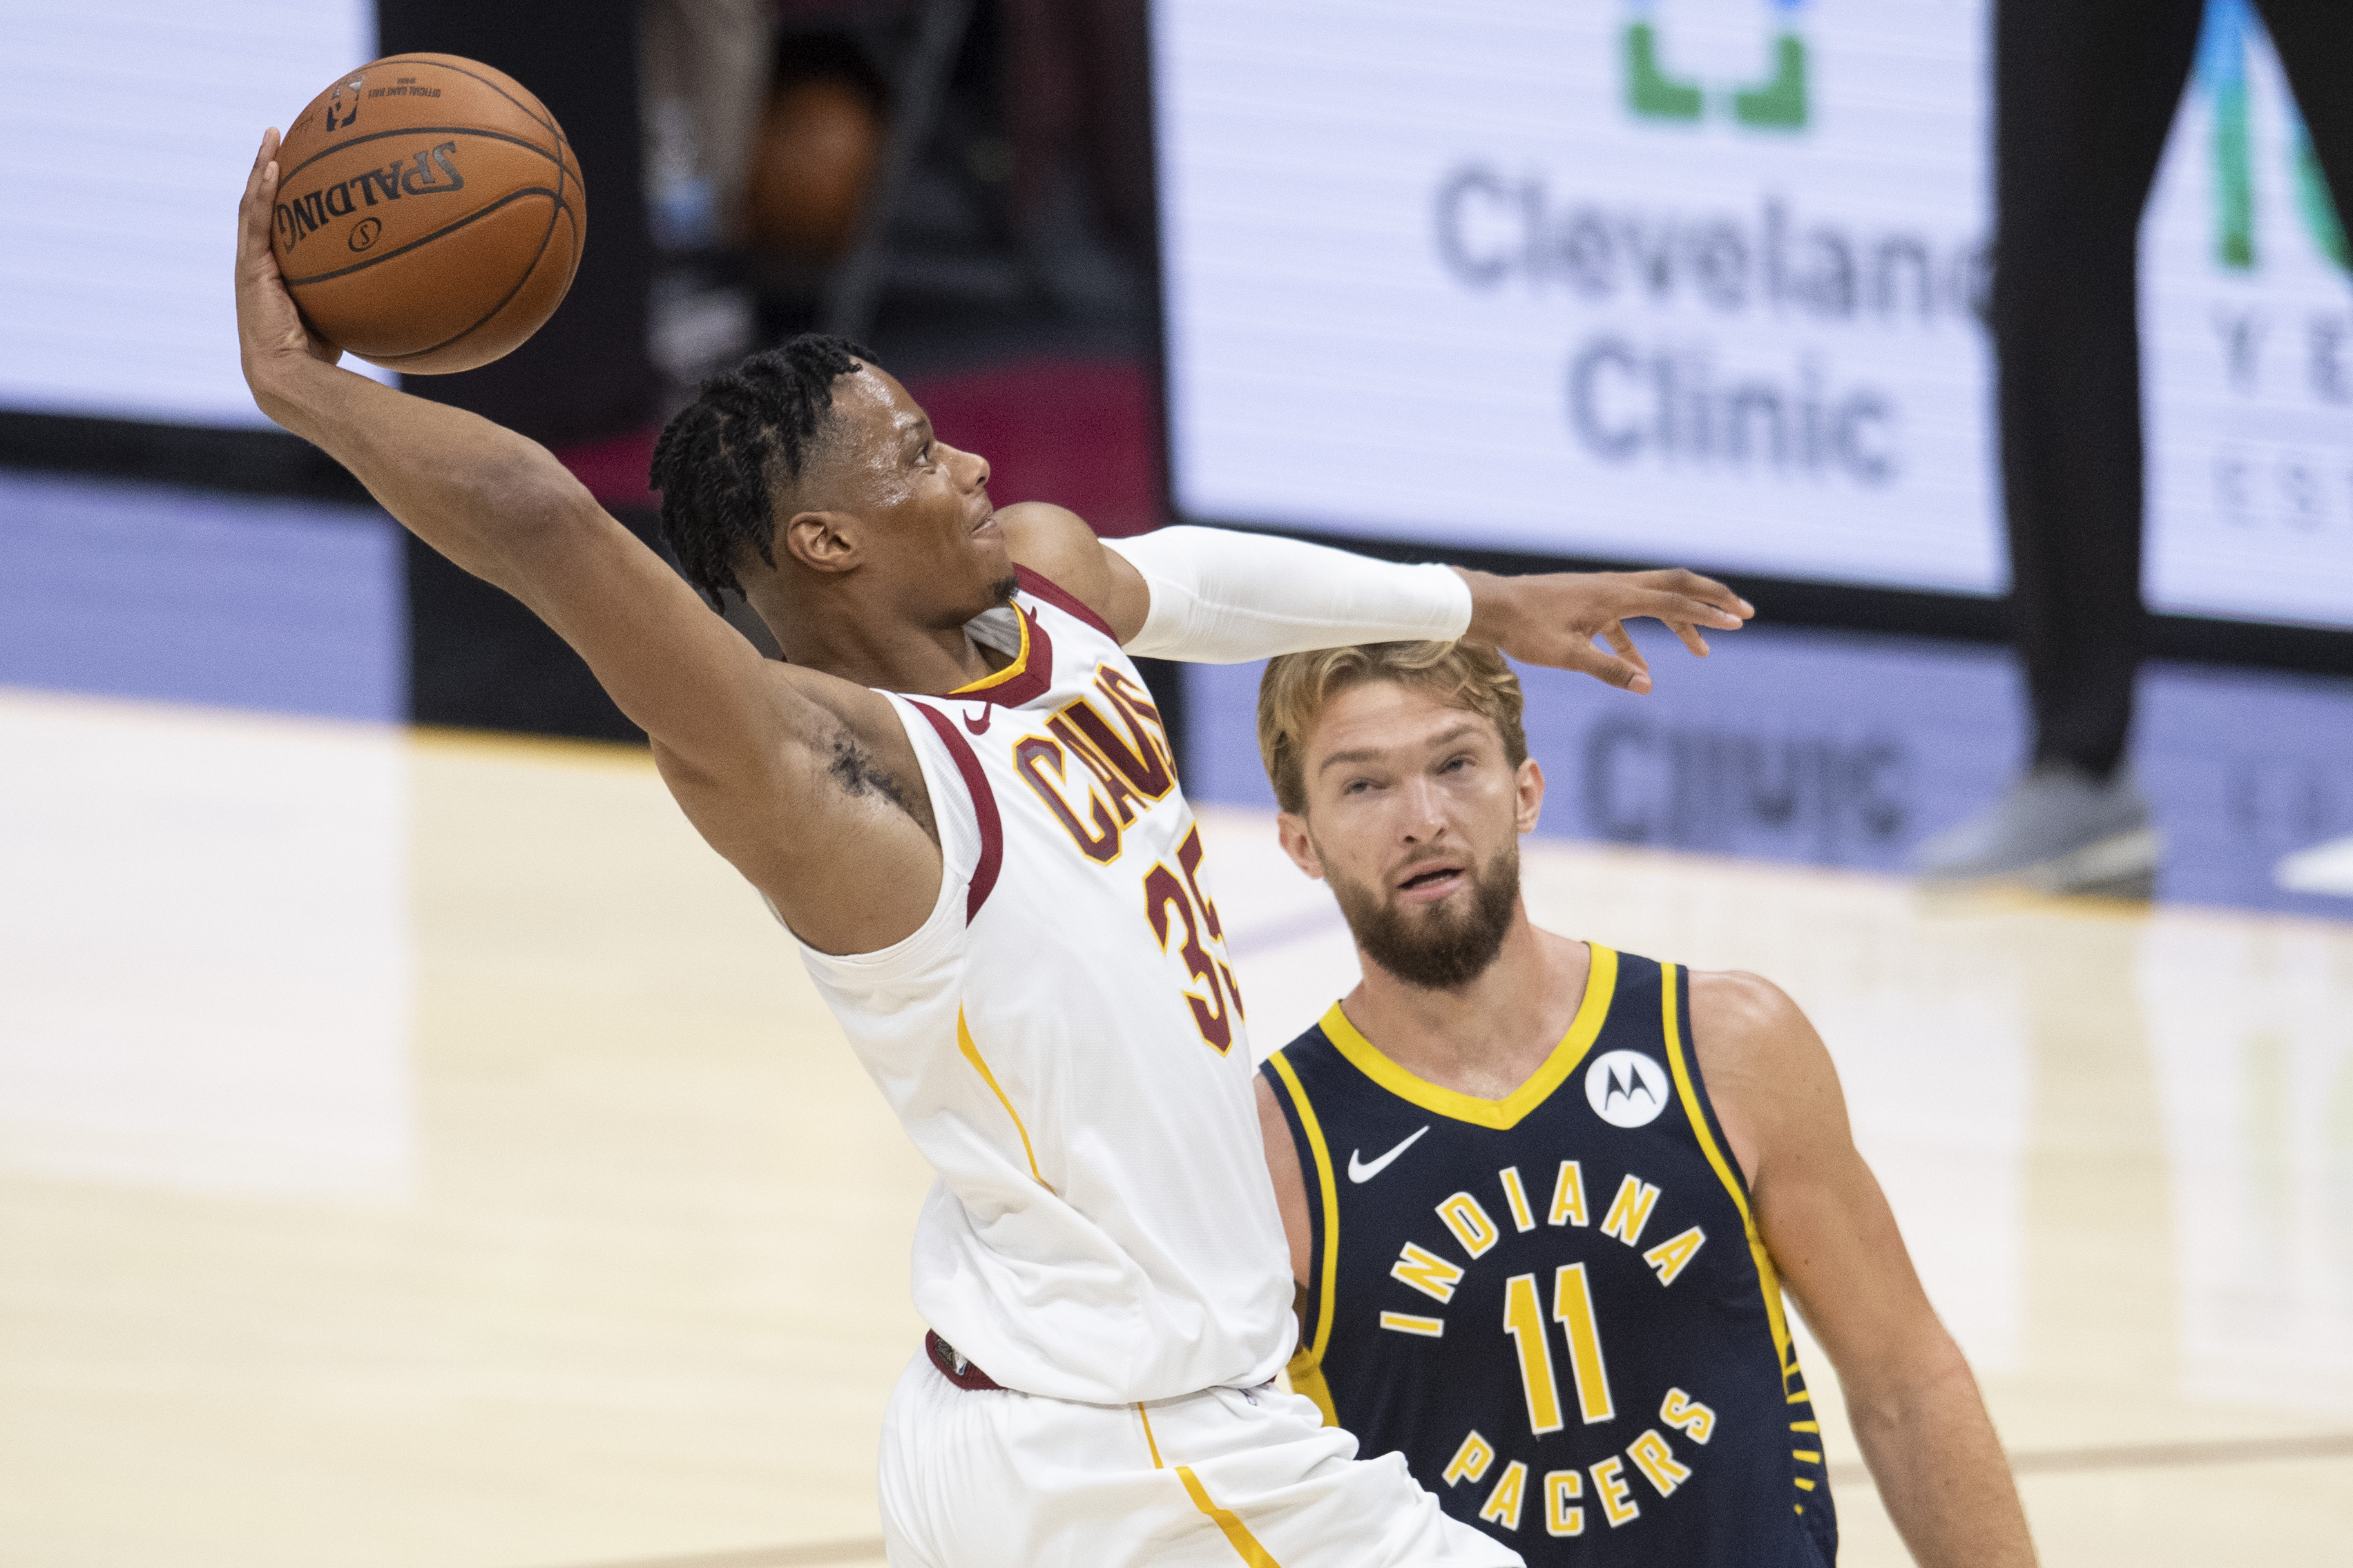 Dec 12, 2020; Cleveland, Ohio, USA; Cleveland Cavaliers guard Isaac Okoro (35) drives to the basket against Indiana Pacers forward Domantas Sabonis (11) during the third quarter at Rocket Mortgage FieldHouse.